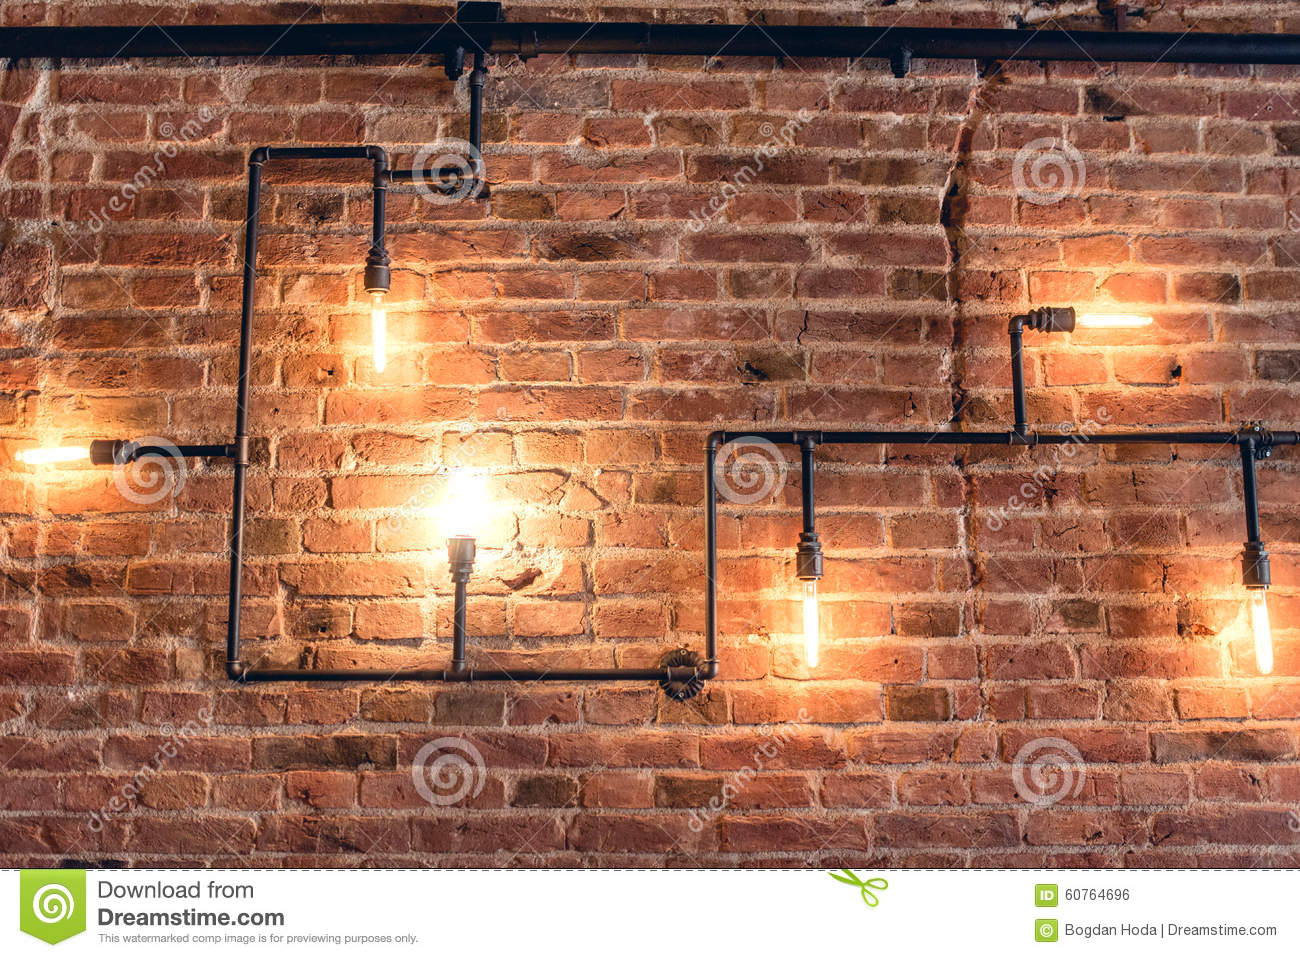 Design Of Vintage Wall. Rustic Design, Brick Wall With